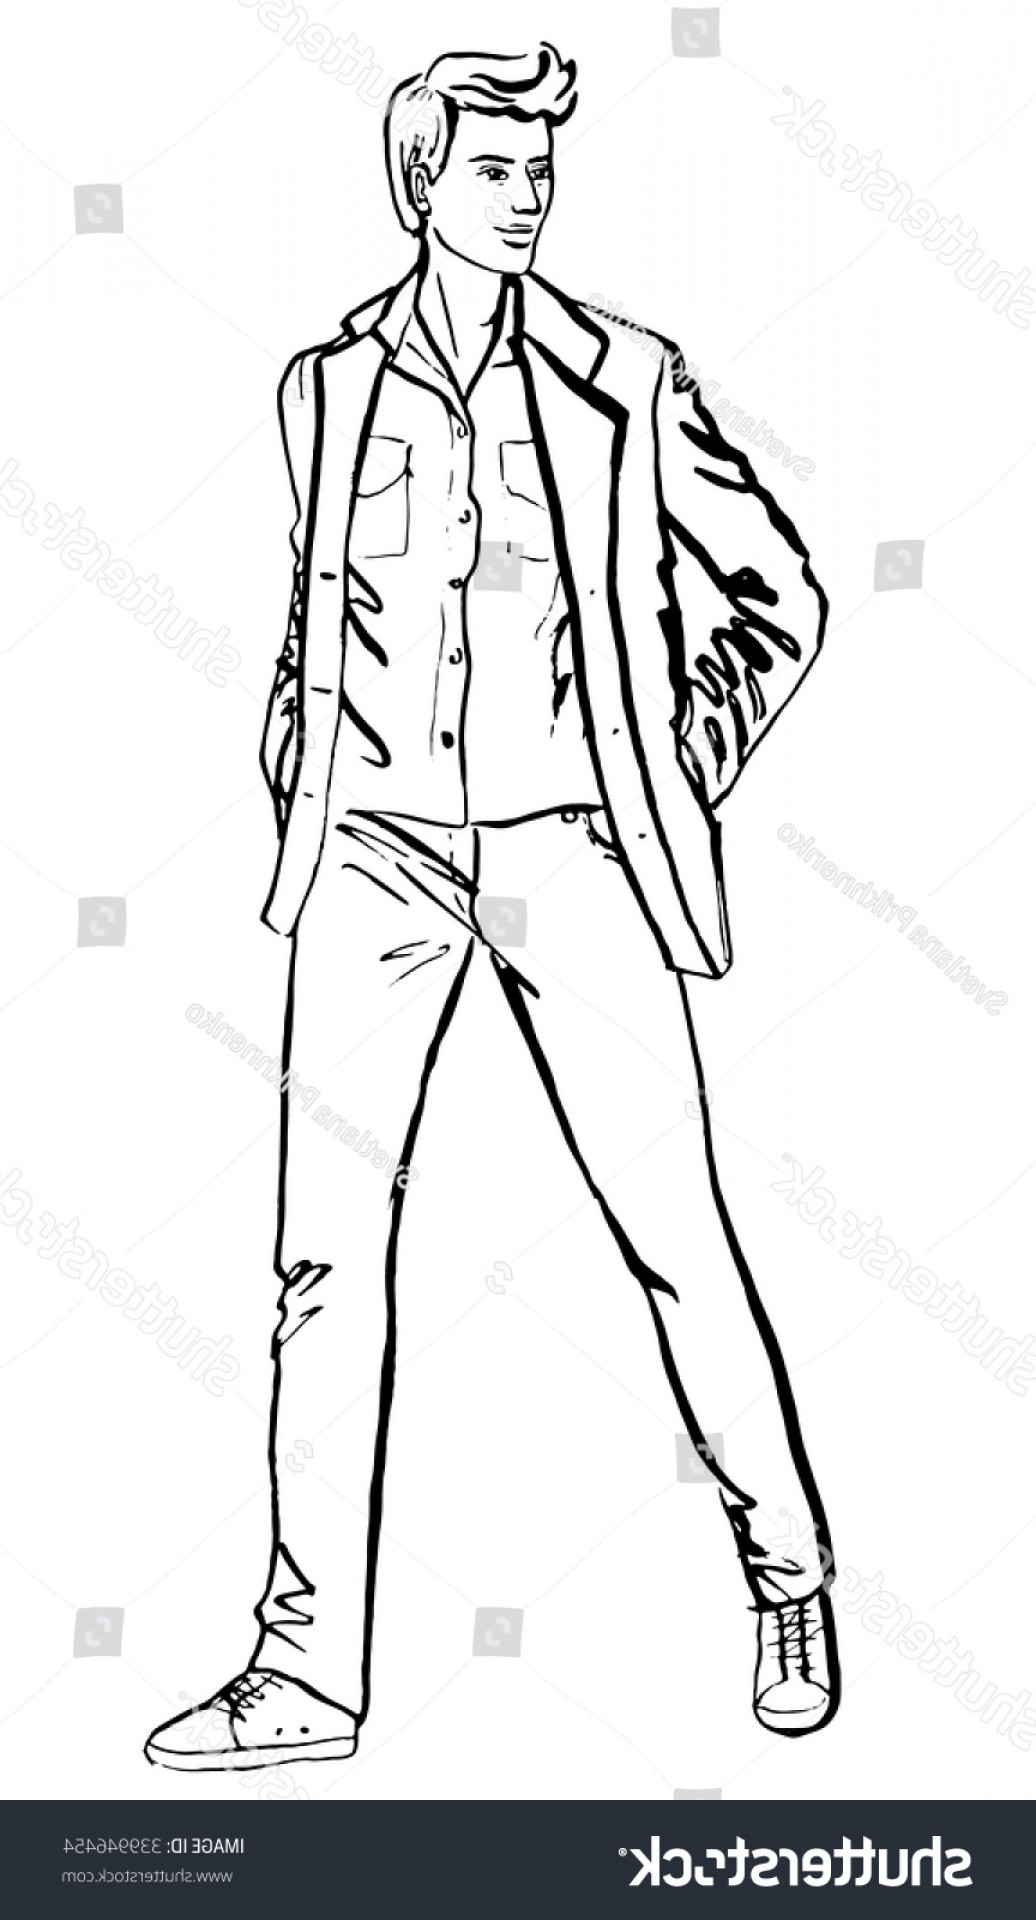 Handsome Man Vector Outline: Illustration Standing Handsome Man Fashion Outline